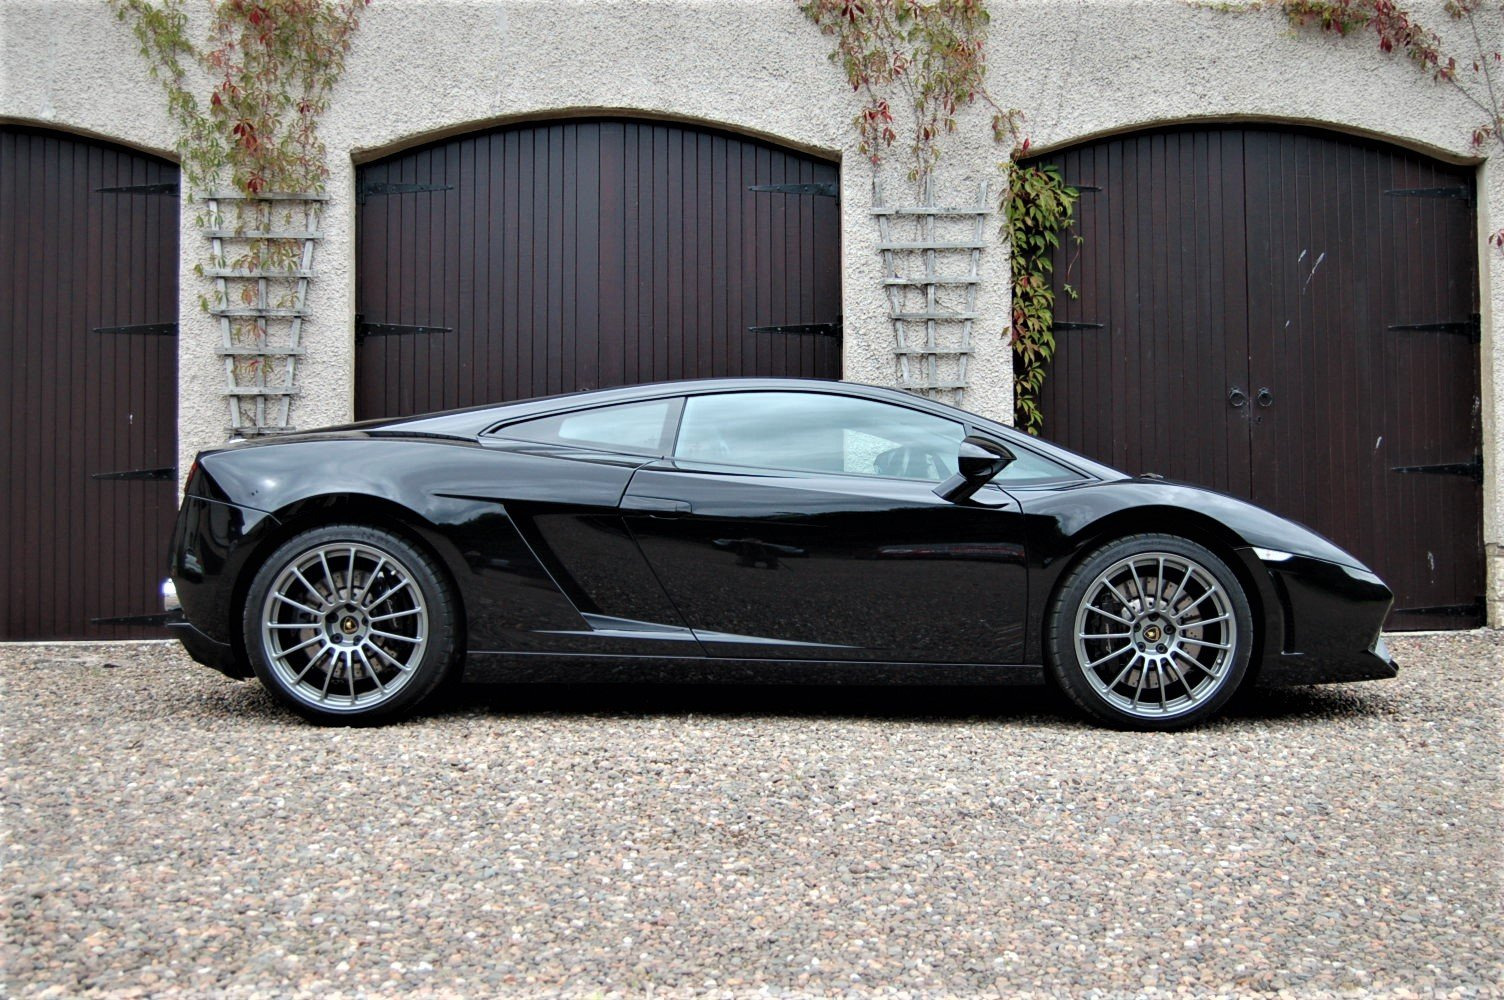 2010 Lamborghini Gallardo 550-2 Balboni For Sale (picture 1 of 6)